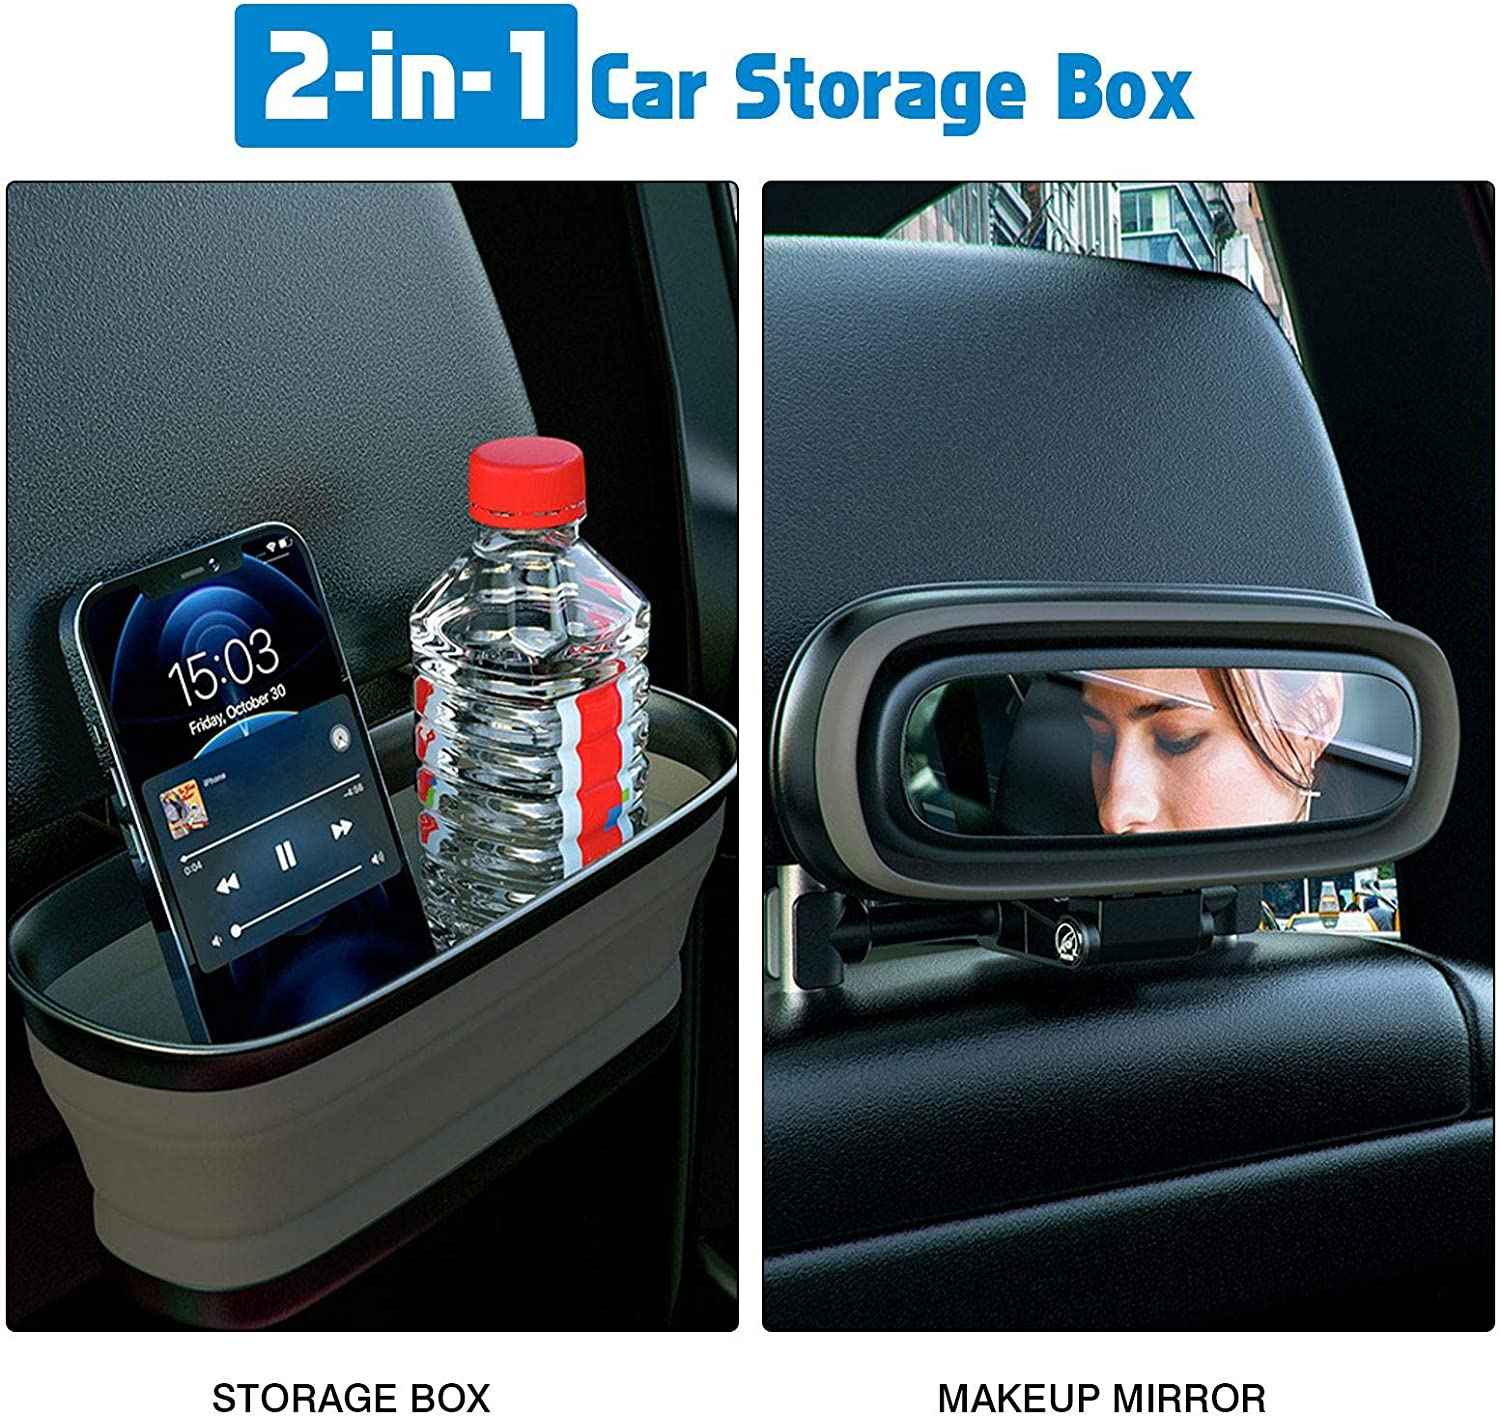 duhe189014 Foldable Car Rear Water Cup Holder With mirror,Retractable cup holder Storage Box,Elastic Kid Toys Holder,Car Storage Box for Drink,Phone,Small objects